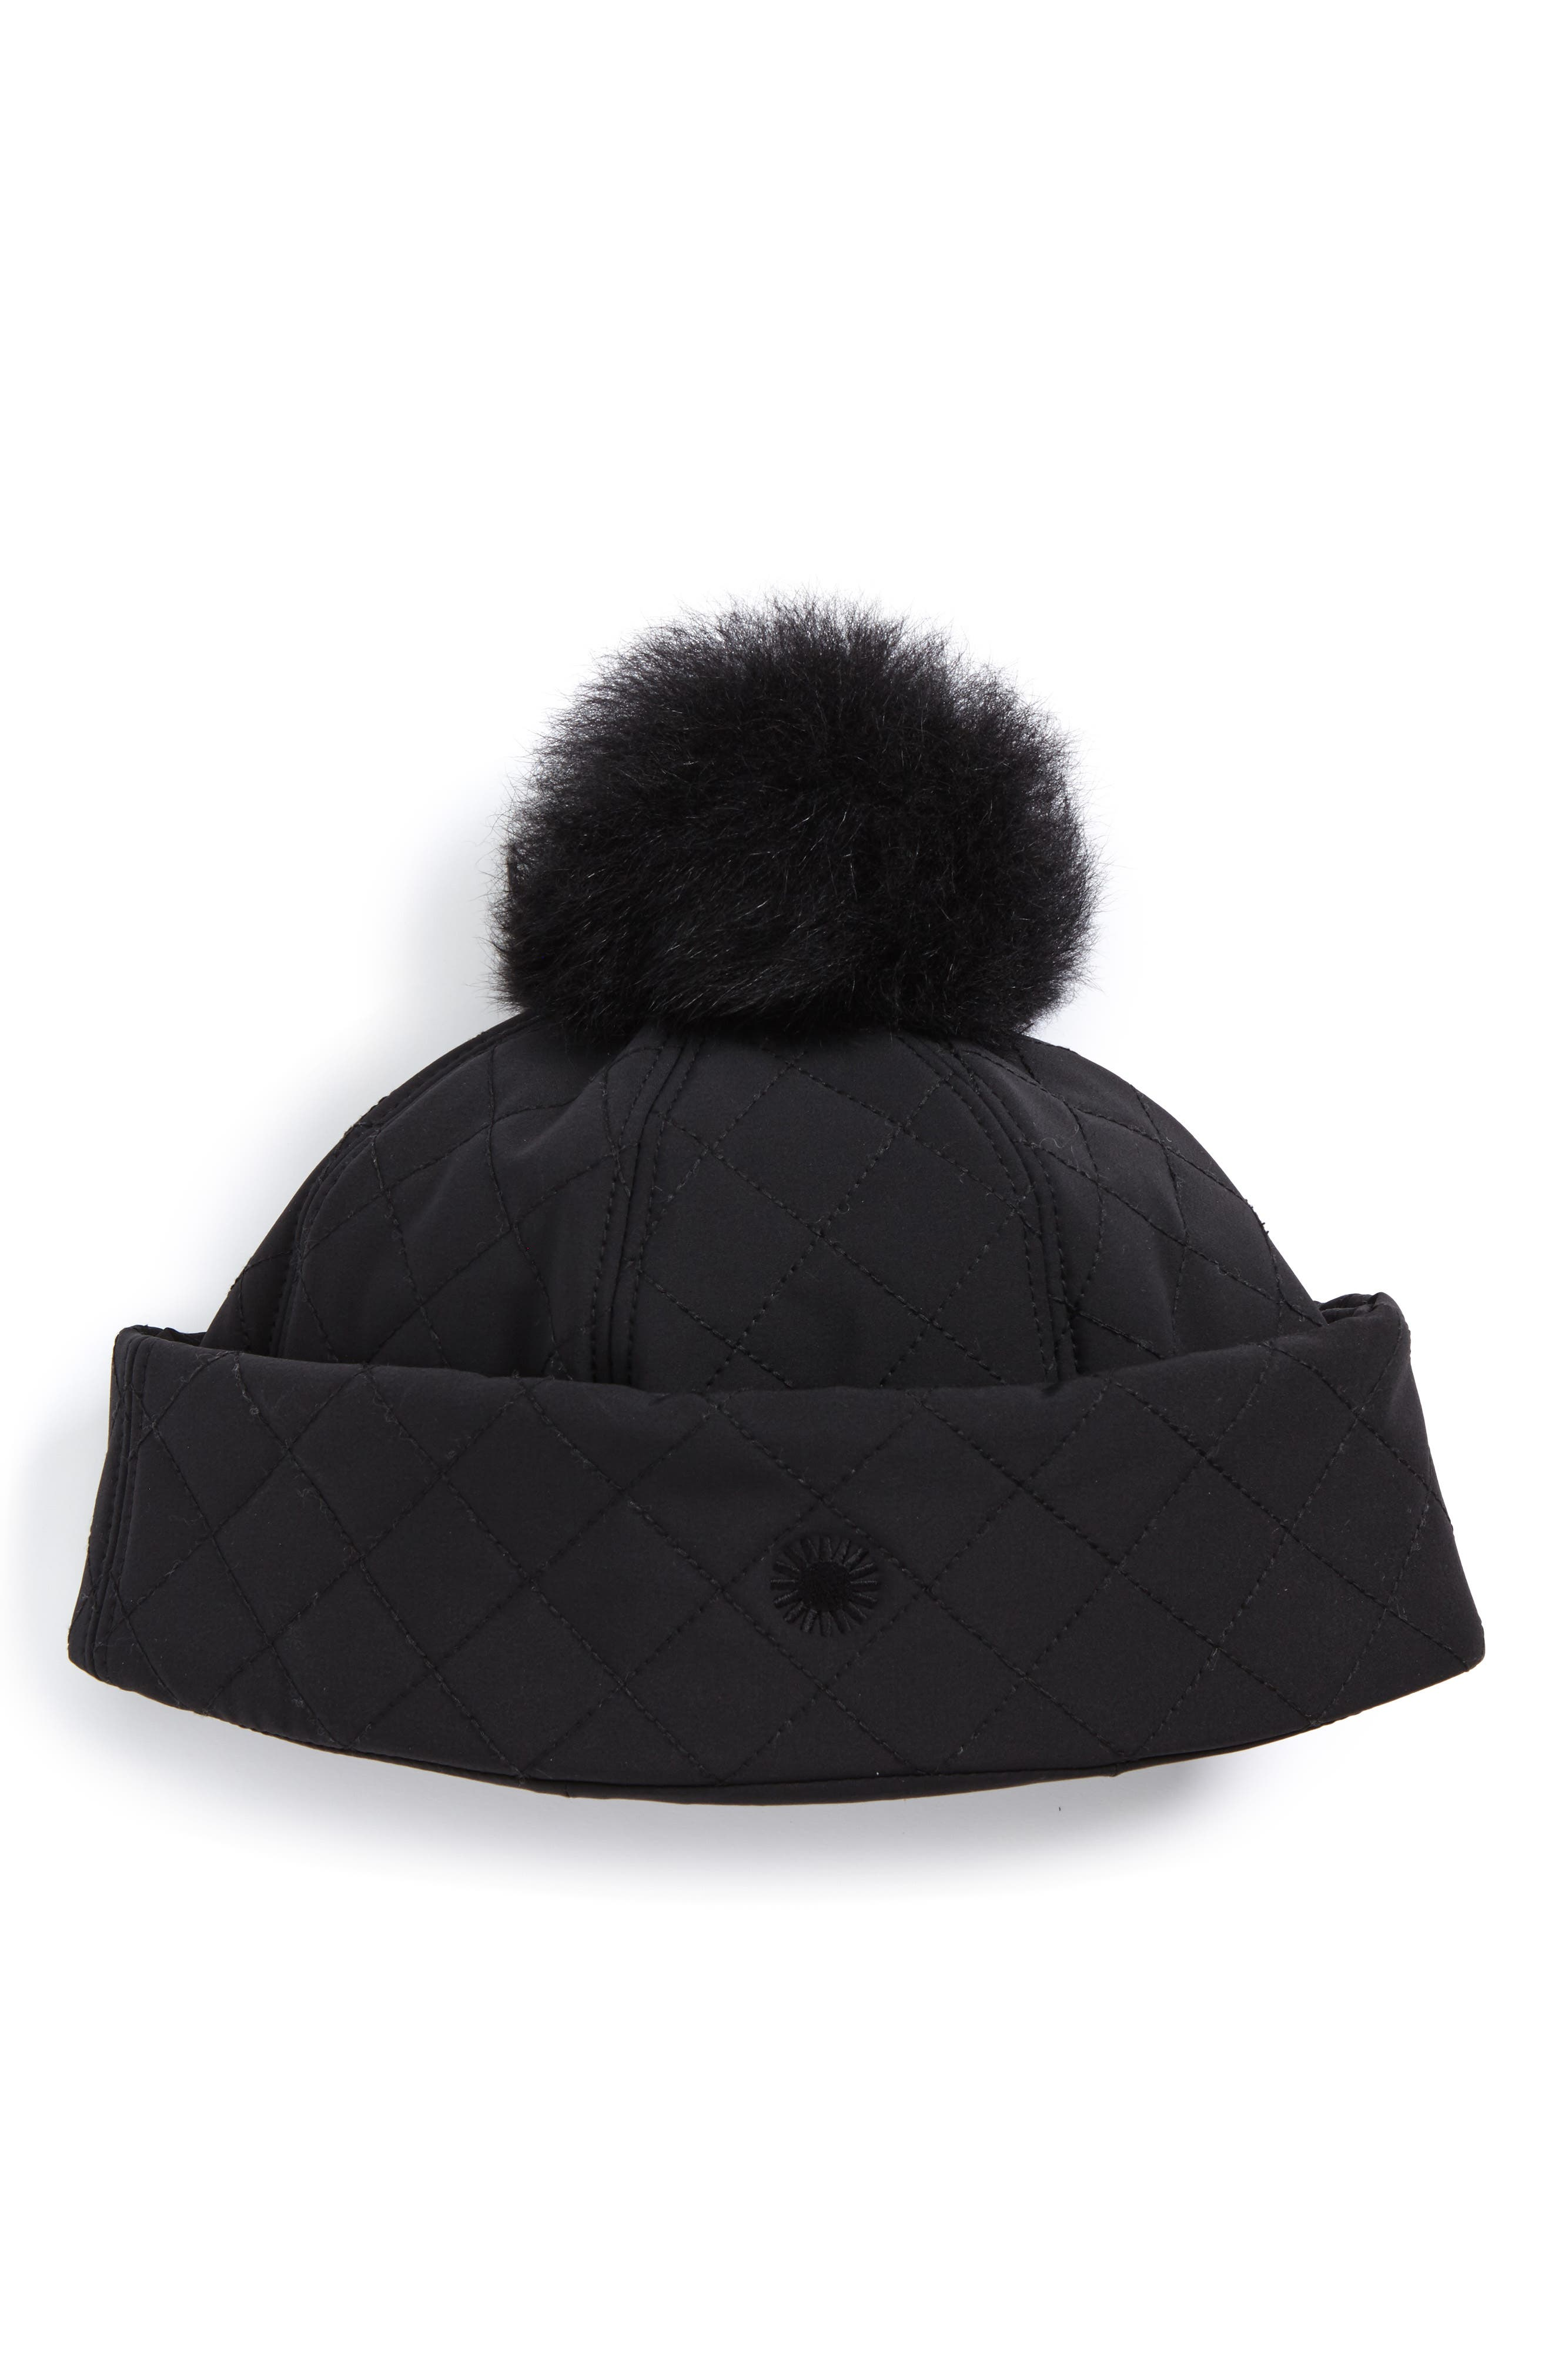 Alternate Image 1 Selected - UGG® Australia Water ResistantQuilted Hat with Genuine ShearlingPompom